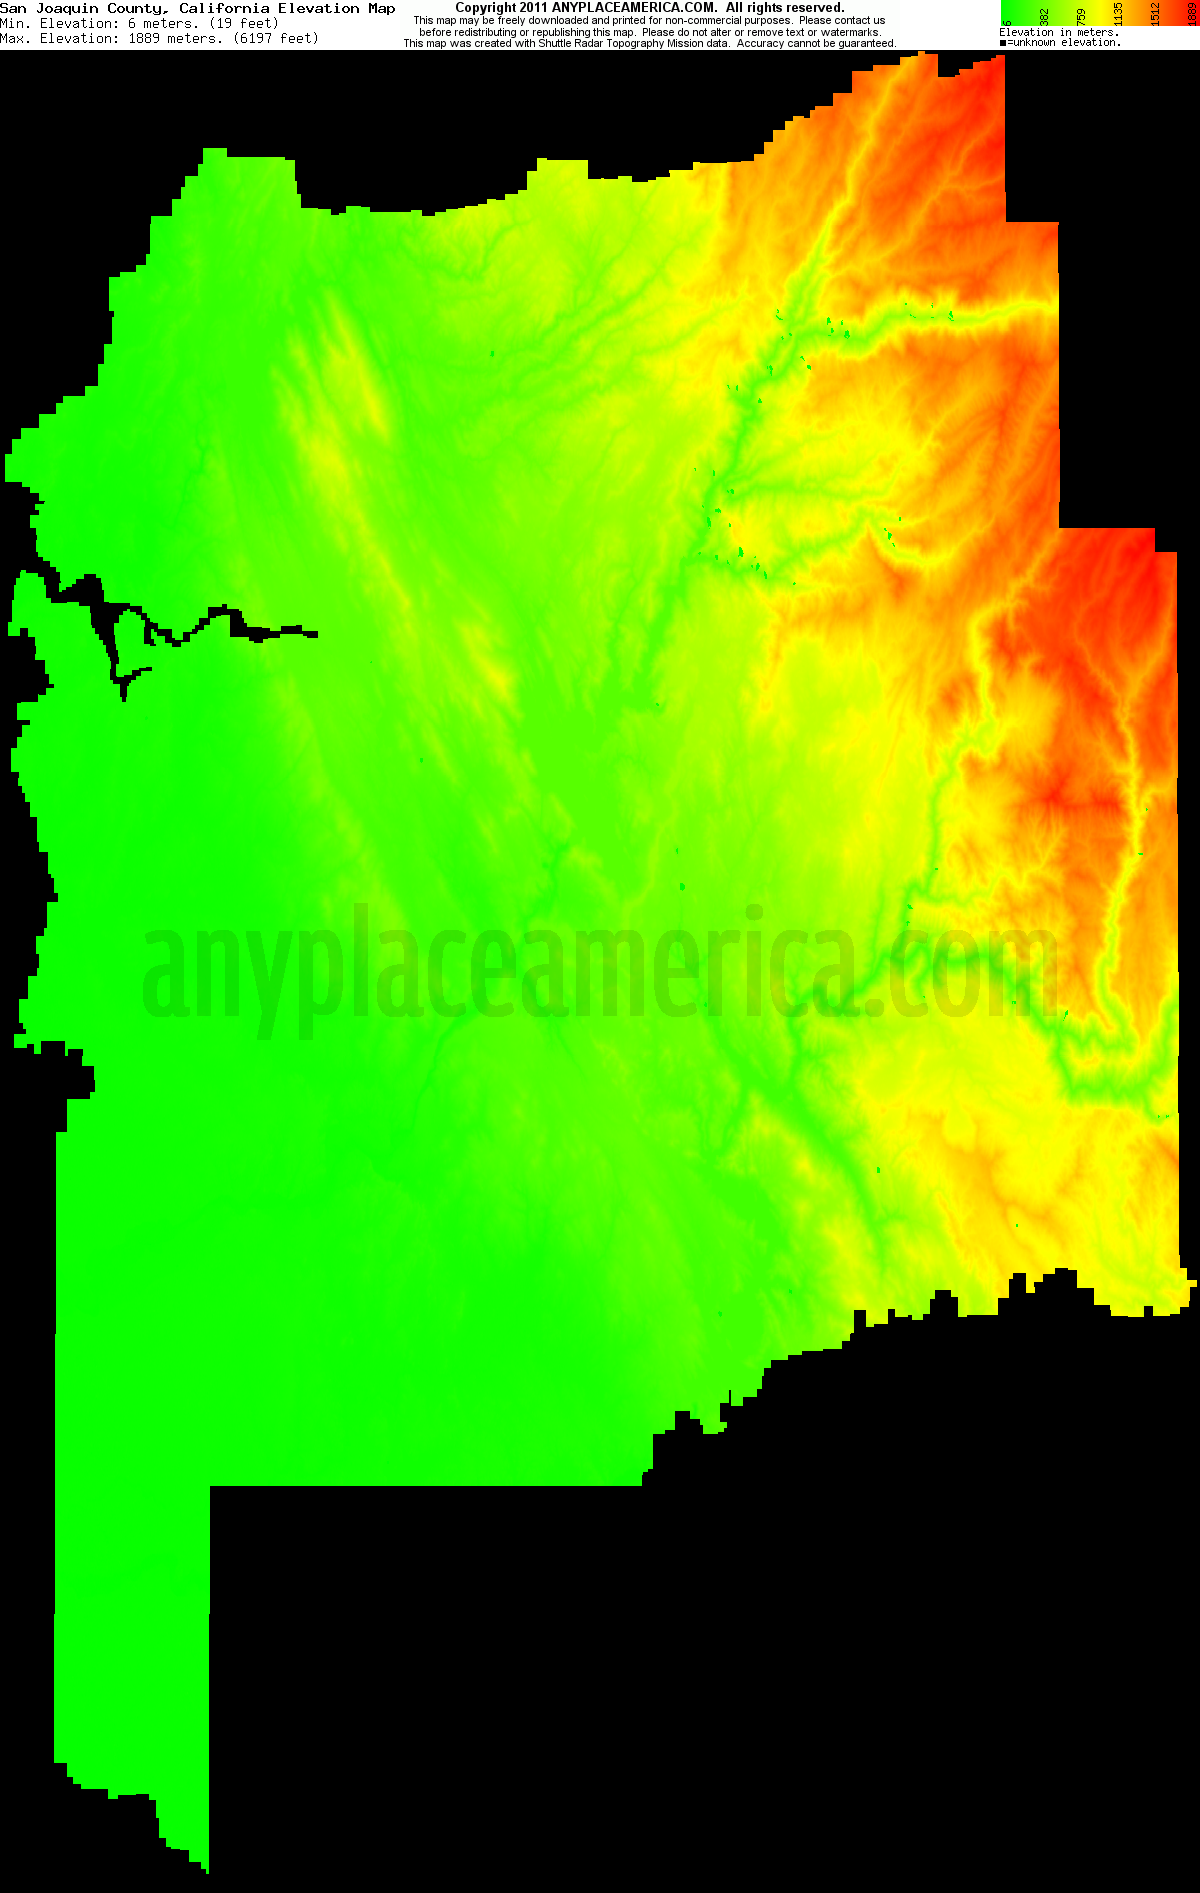 Download San Joaquin County Elevation Map